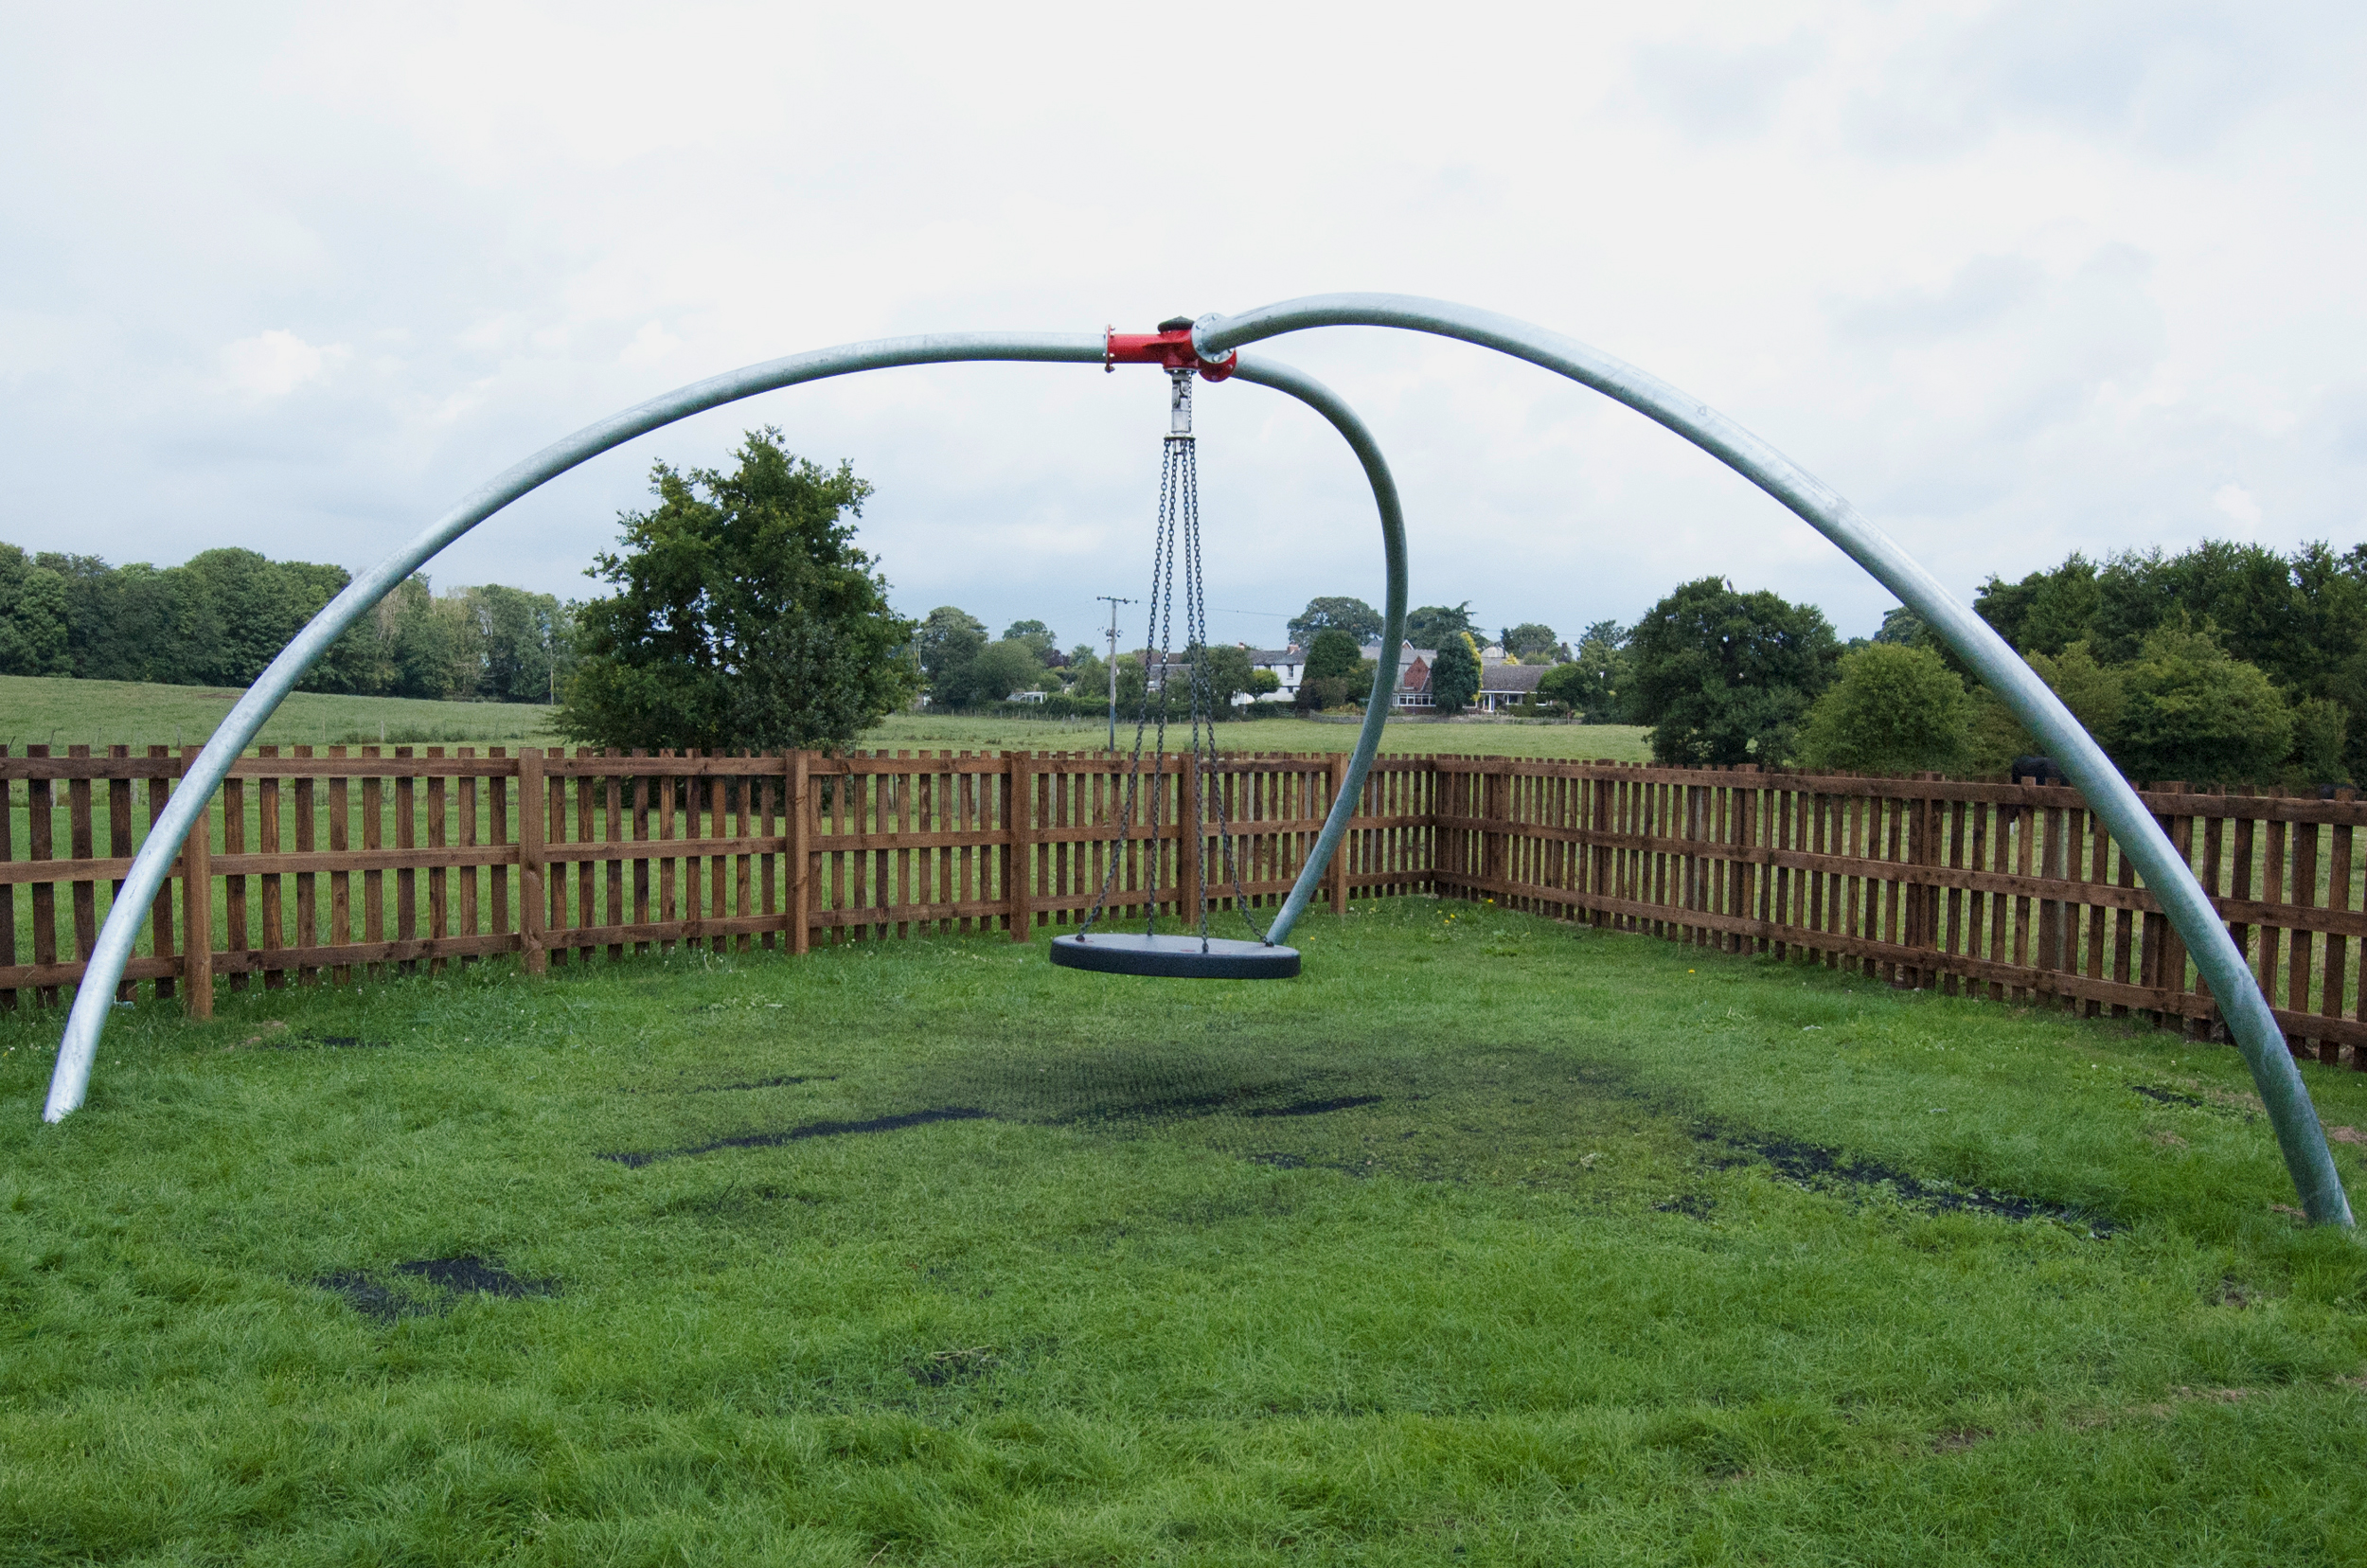 the inclusive single point swing has a flat swing hanging on chain from a central red pivot held by three curved silver legs, it is sat above grass with a surround timber fence and trees in the background